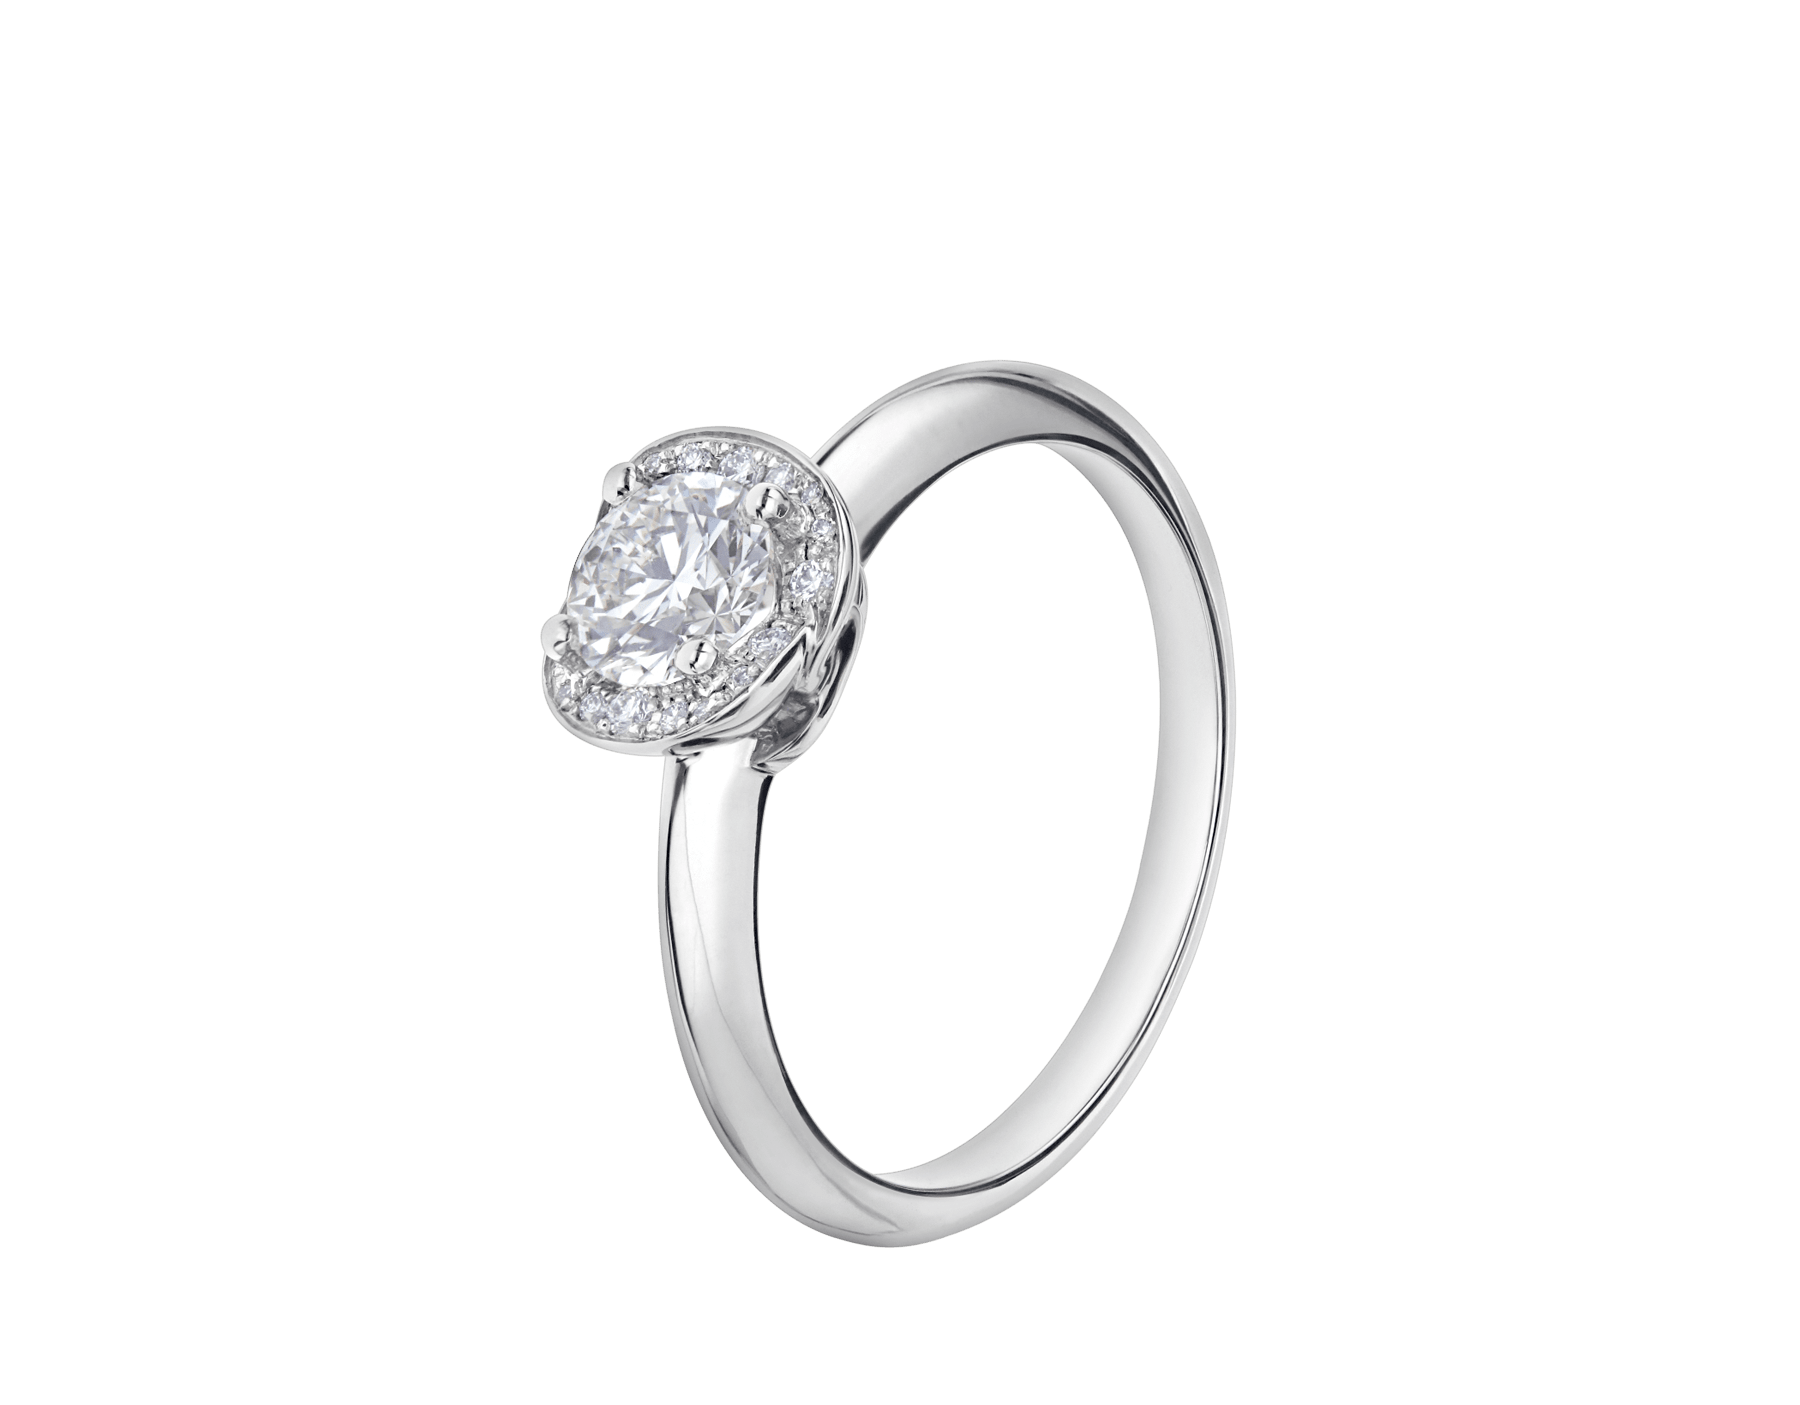 Incontro d'Amore platinum ring set with a round brilliant-cut diamond and a halo of pavé diamonds. 355398 image 1